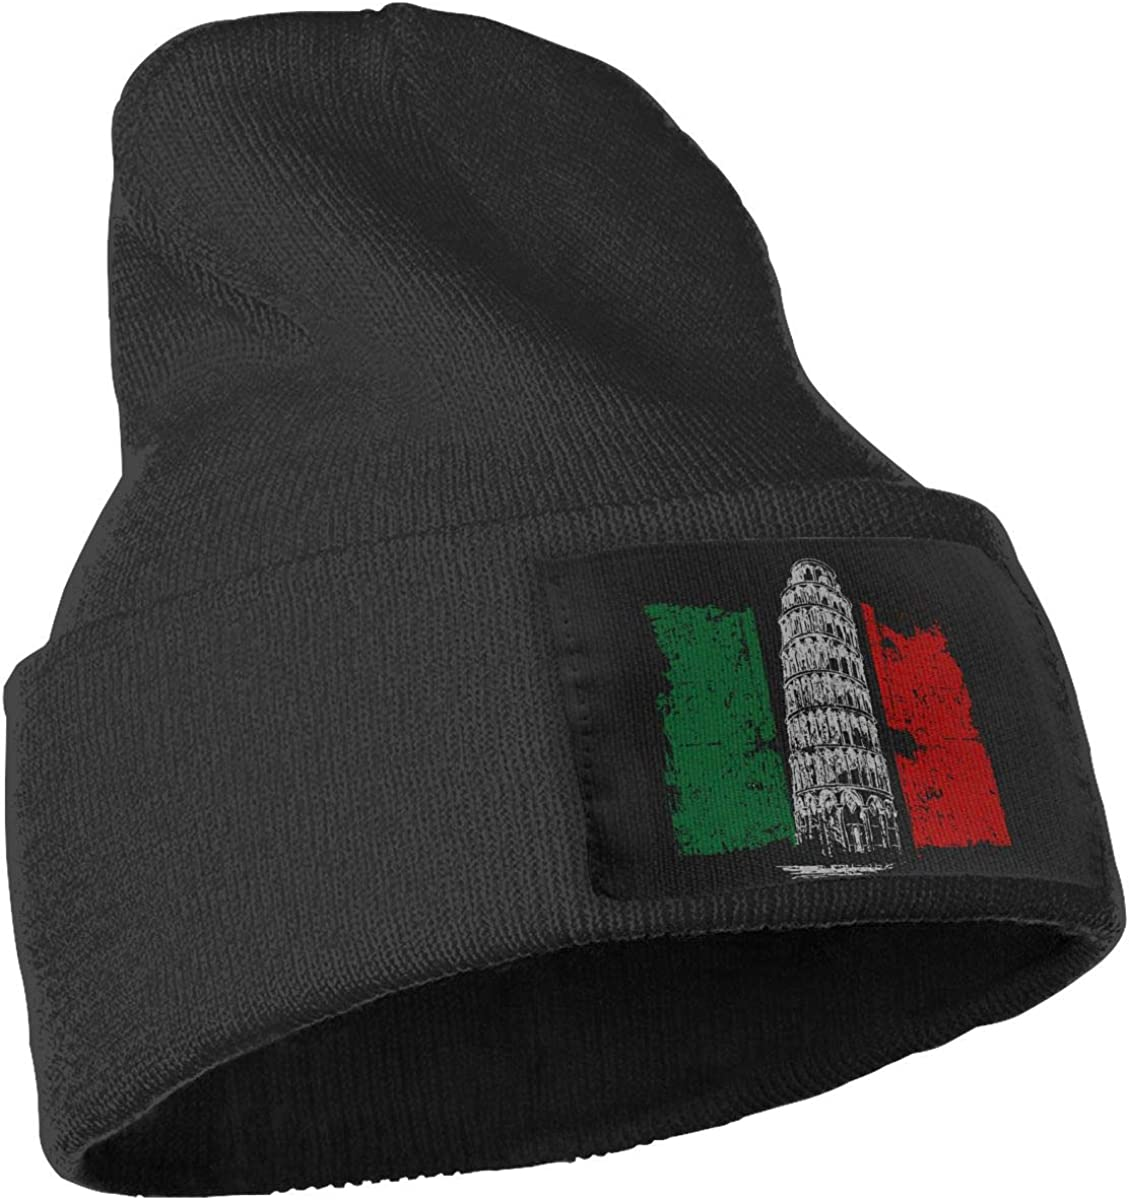 WHOO93@Y Mens and Womens 100/% Acrylic Knitting Hat Cap Tower Italian Flag Thick Skull Cap